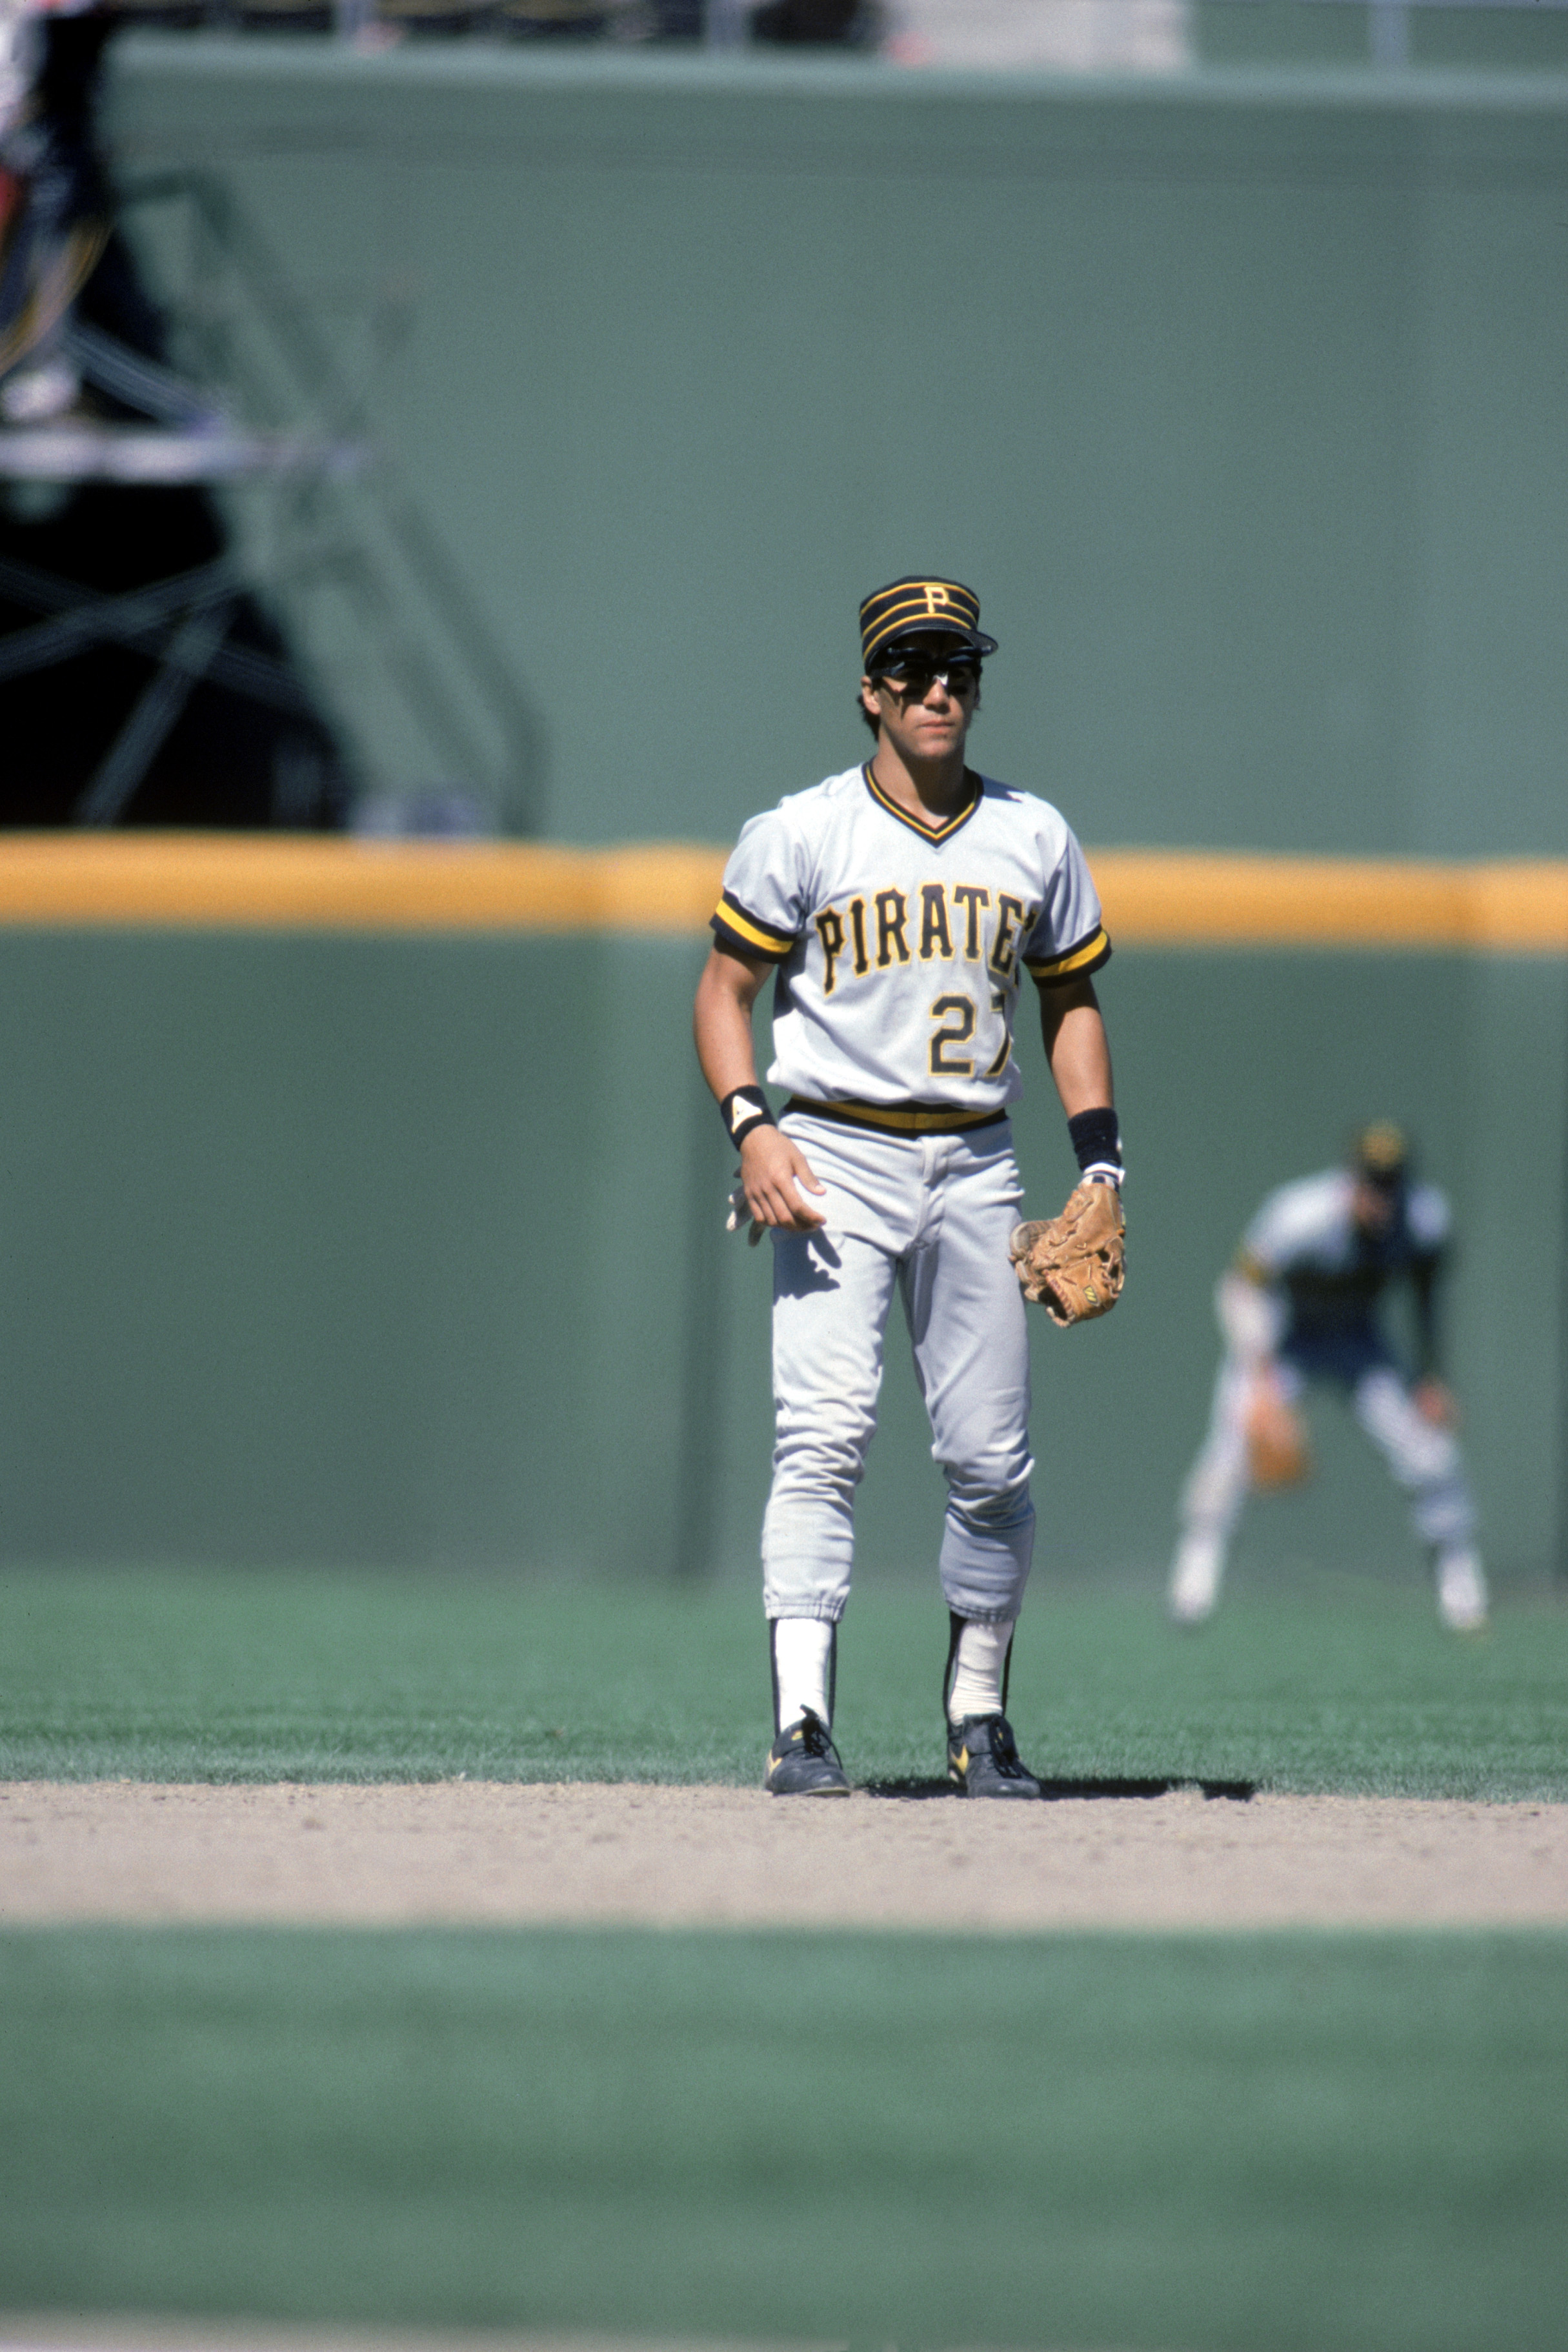 SAN DIEGO - UNDATED:  Sam Khalifa #27 of the Pittsburgh Pirates stands ready for a play during a game against the San Diego Padres circa 1985-1987 at Jack Murphy Stadium in San Diego, California.  (Photo by Rick Stewart/Getty Images)